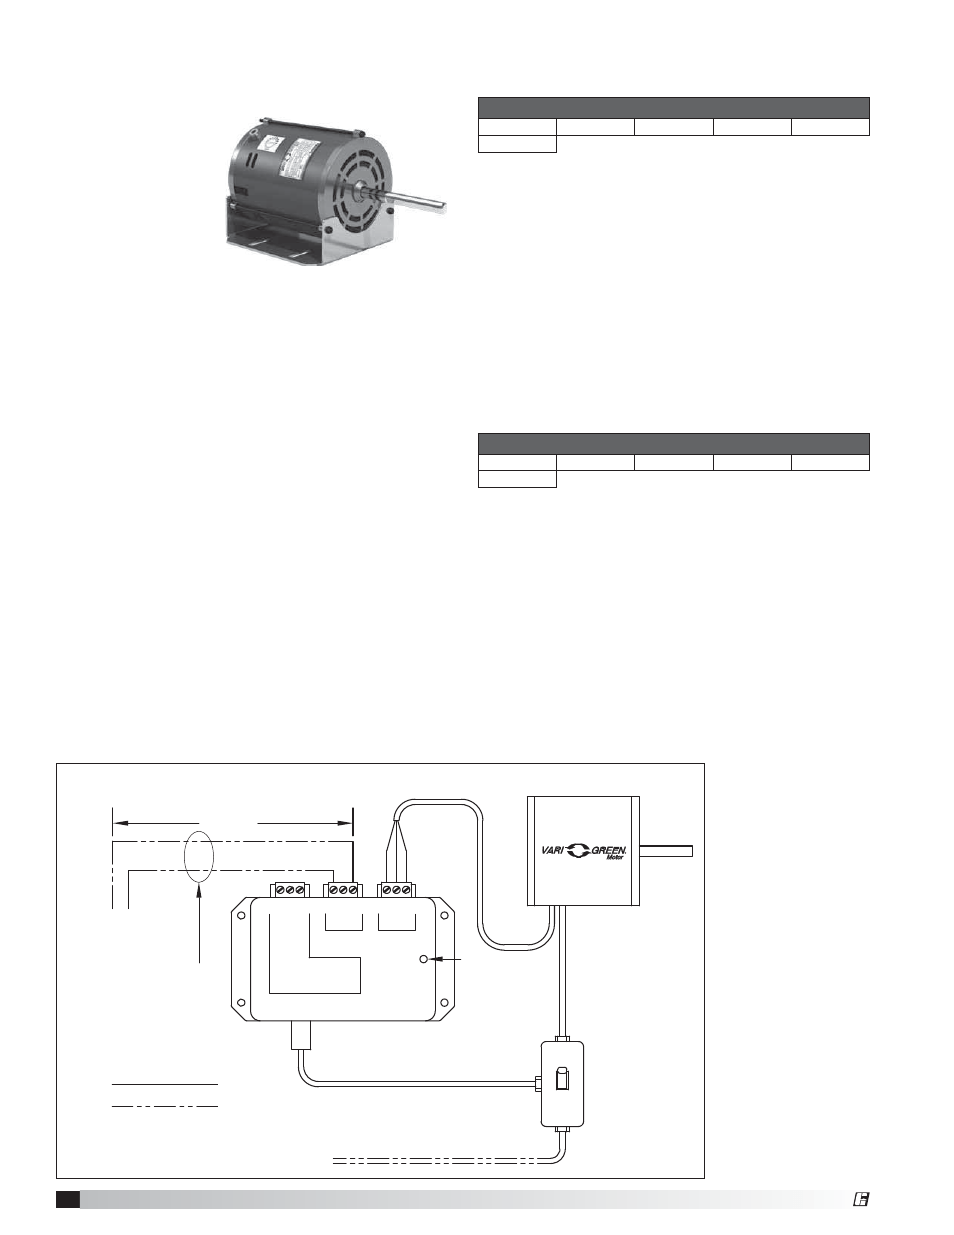 Free Dc 24v Thermostat Wiring Diagram Auto Electrical Related With